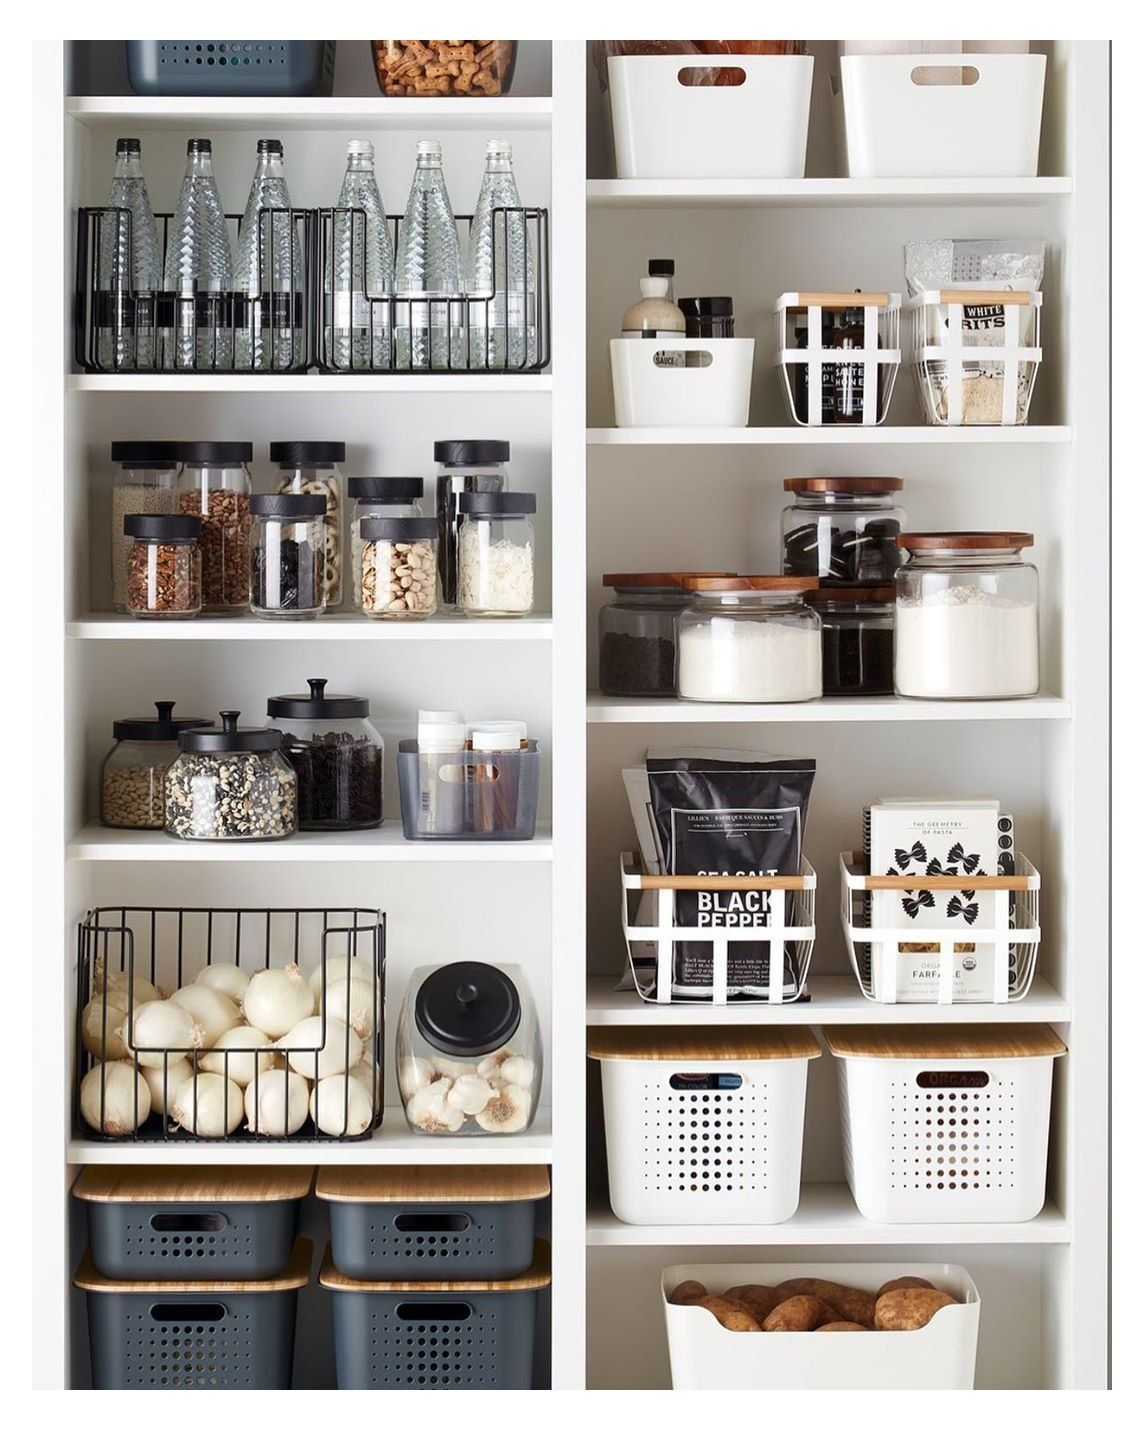 This is SO PRETTY  @thecontainerstore . . . . . #kitchenideas #thator #Decoration #homedecor #homedesign  This is SO PRETTY  @thecontainerstore . . . . . #kitchenideas #thator #Decoration #homedecor #homedesign #homeideas